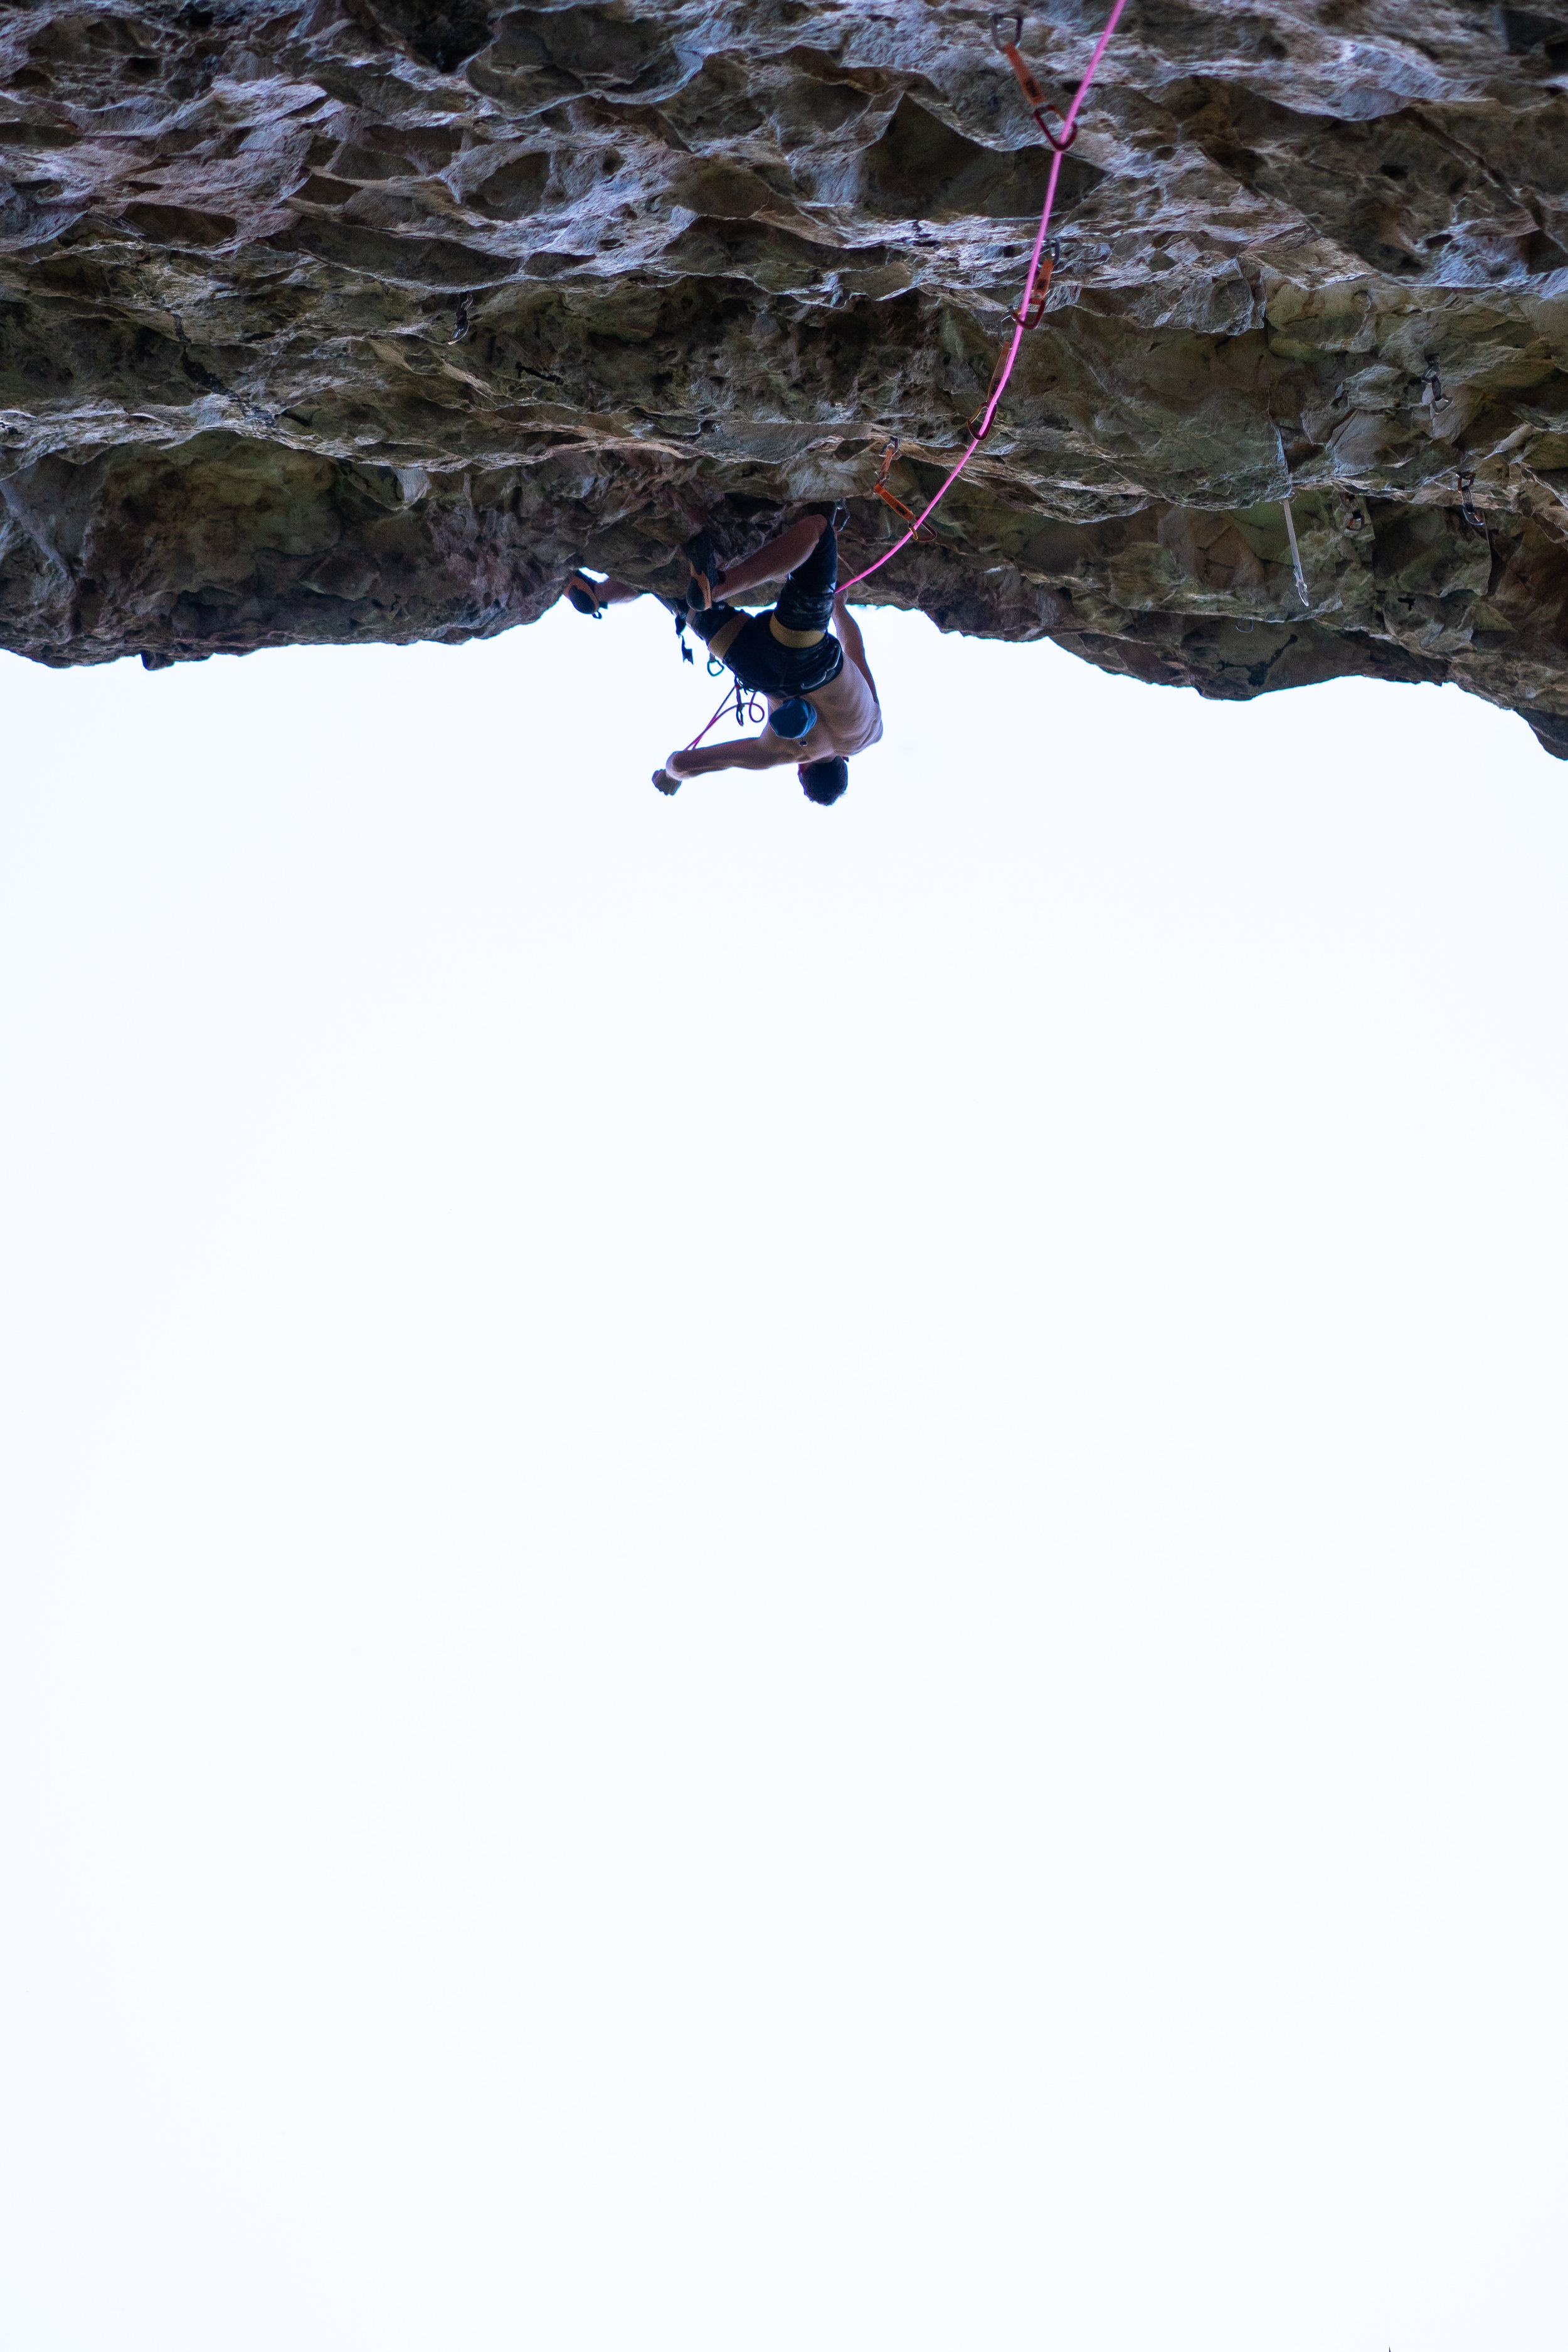 New routes!